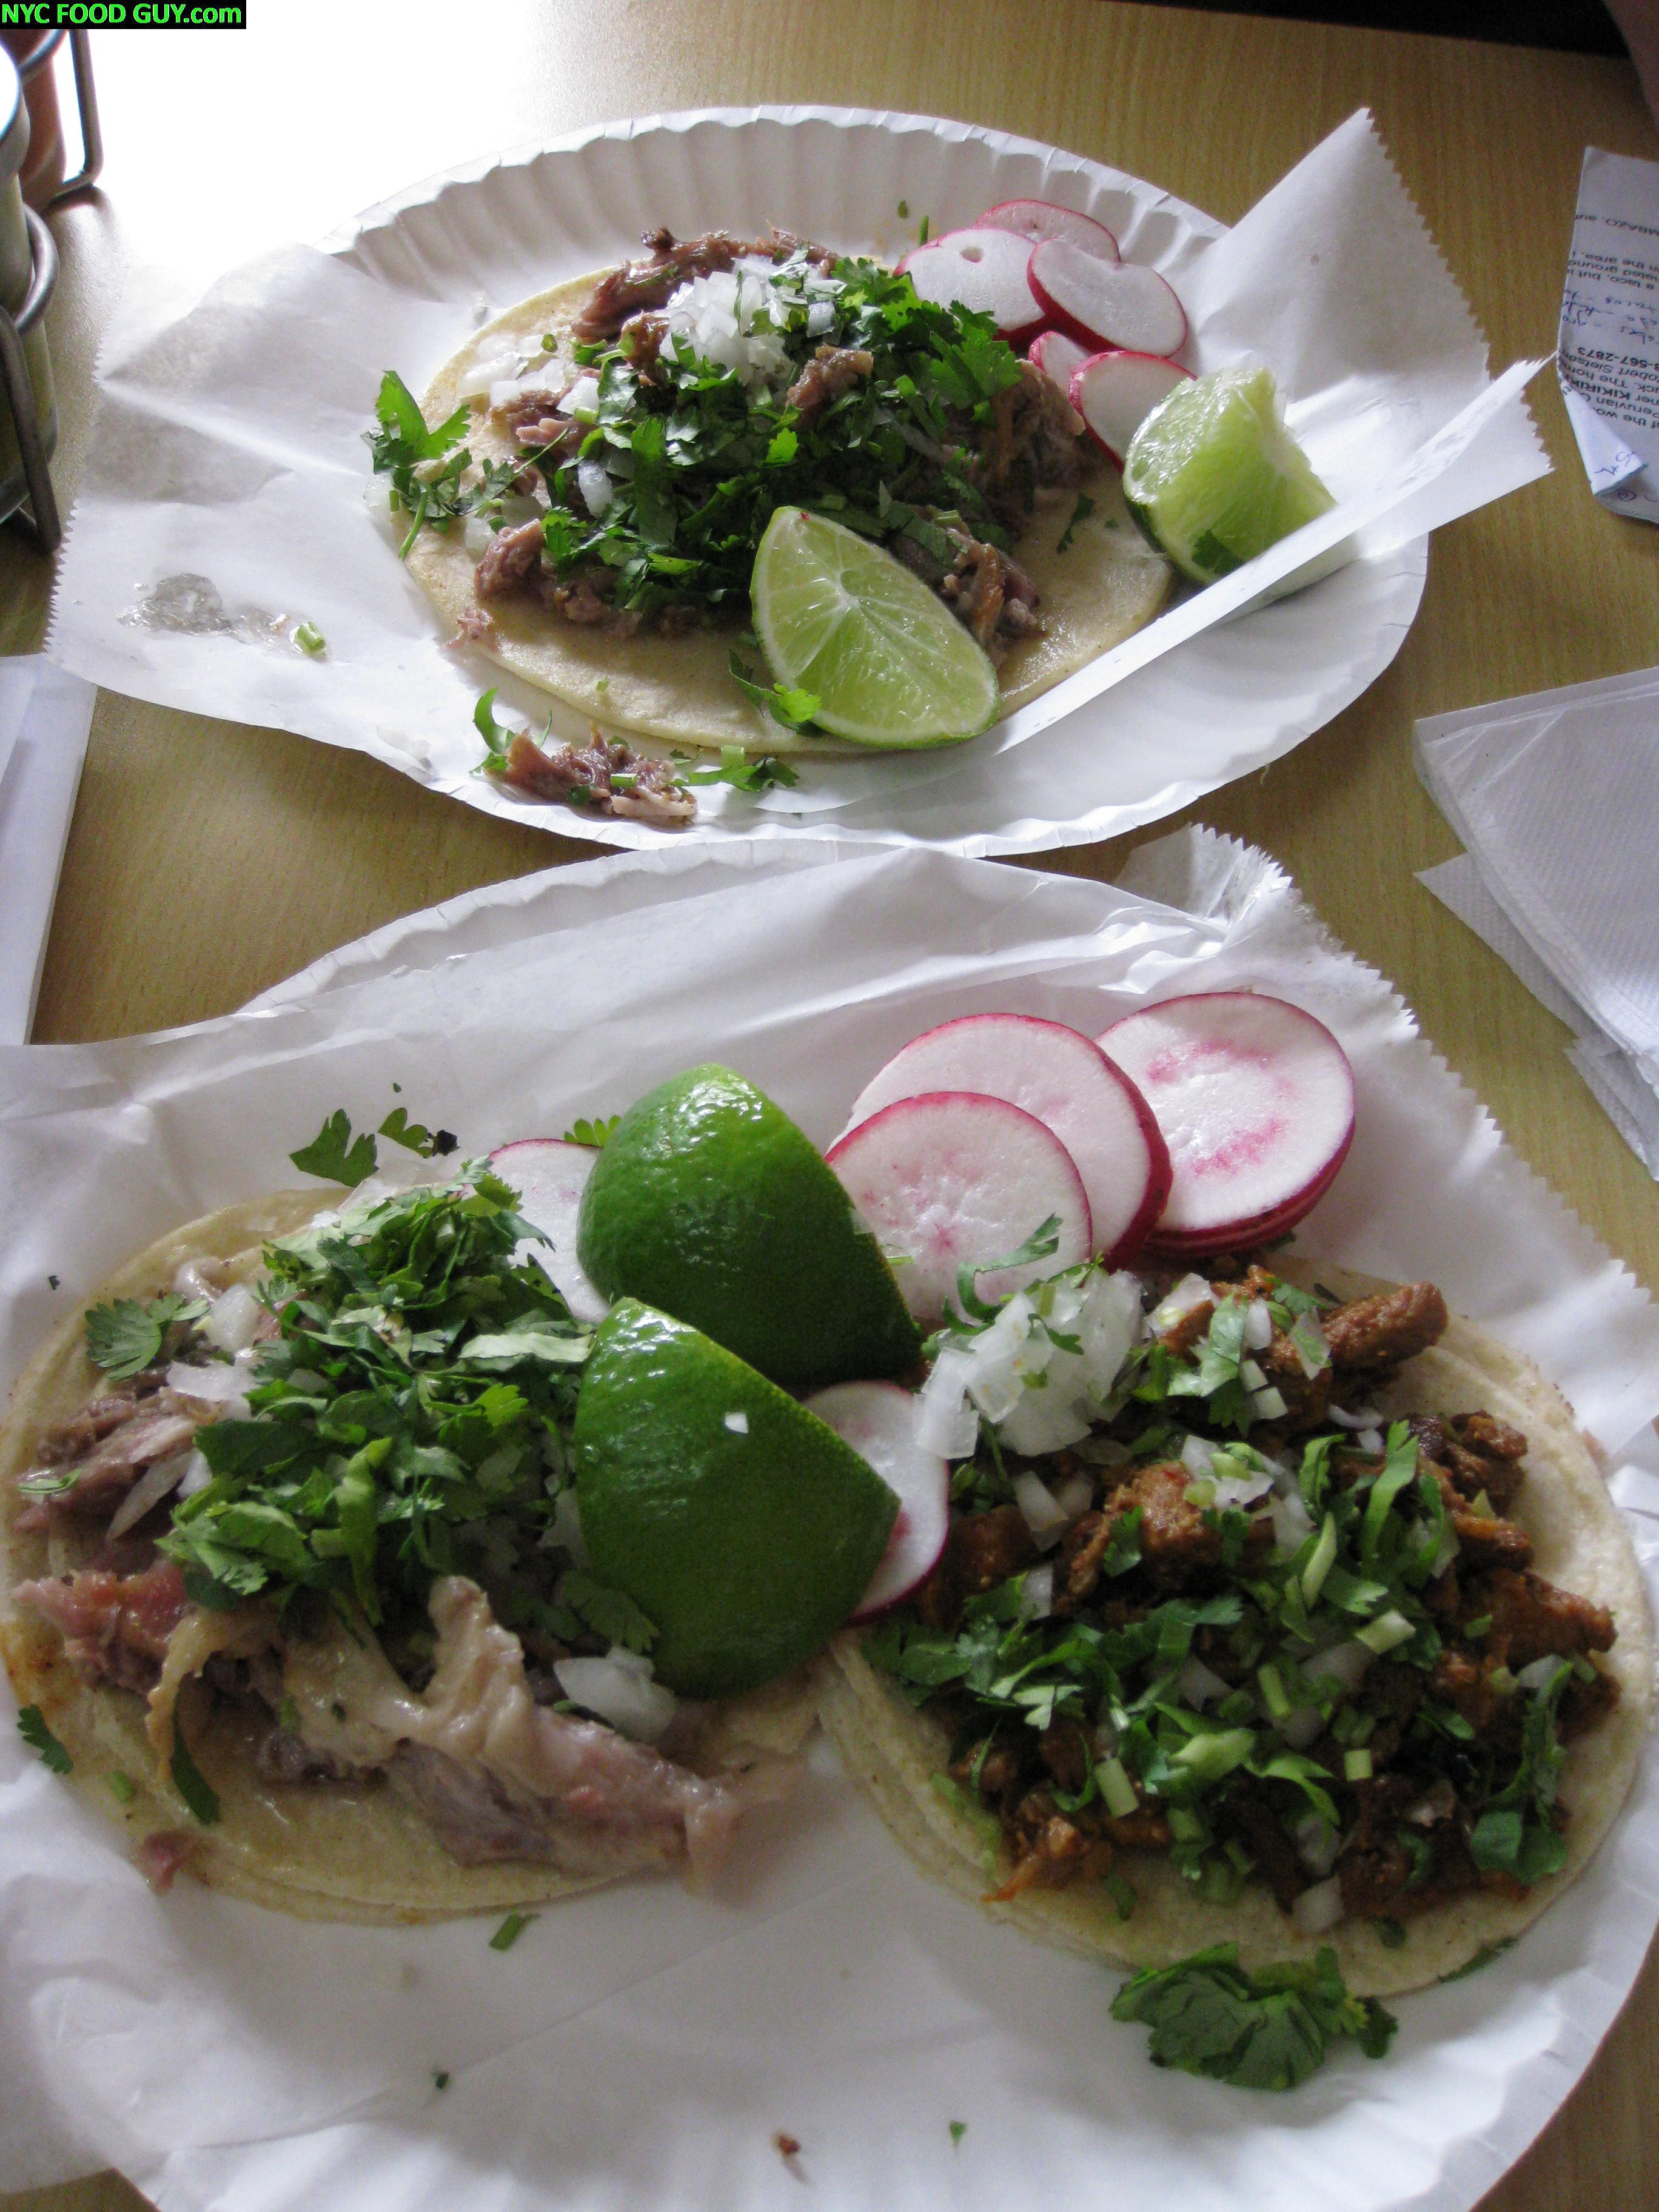 Carnitas (fried pork) taco especiales (top), carnitas (bot. left) & enchilada (spicy pork, bot. right) taquitos